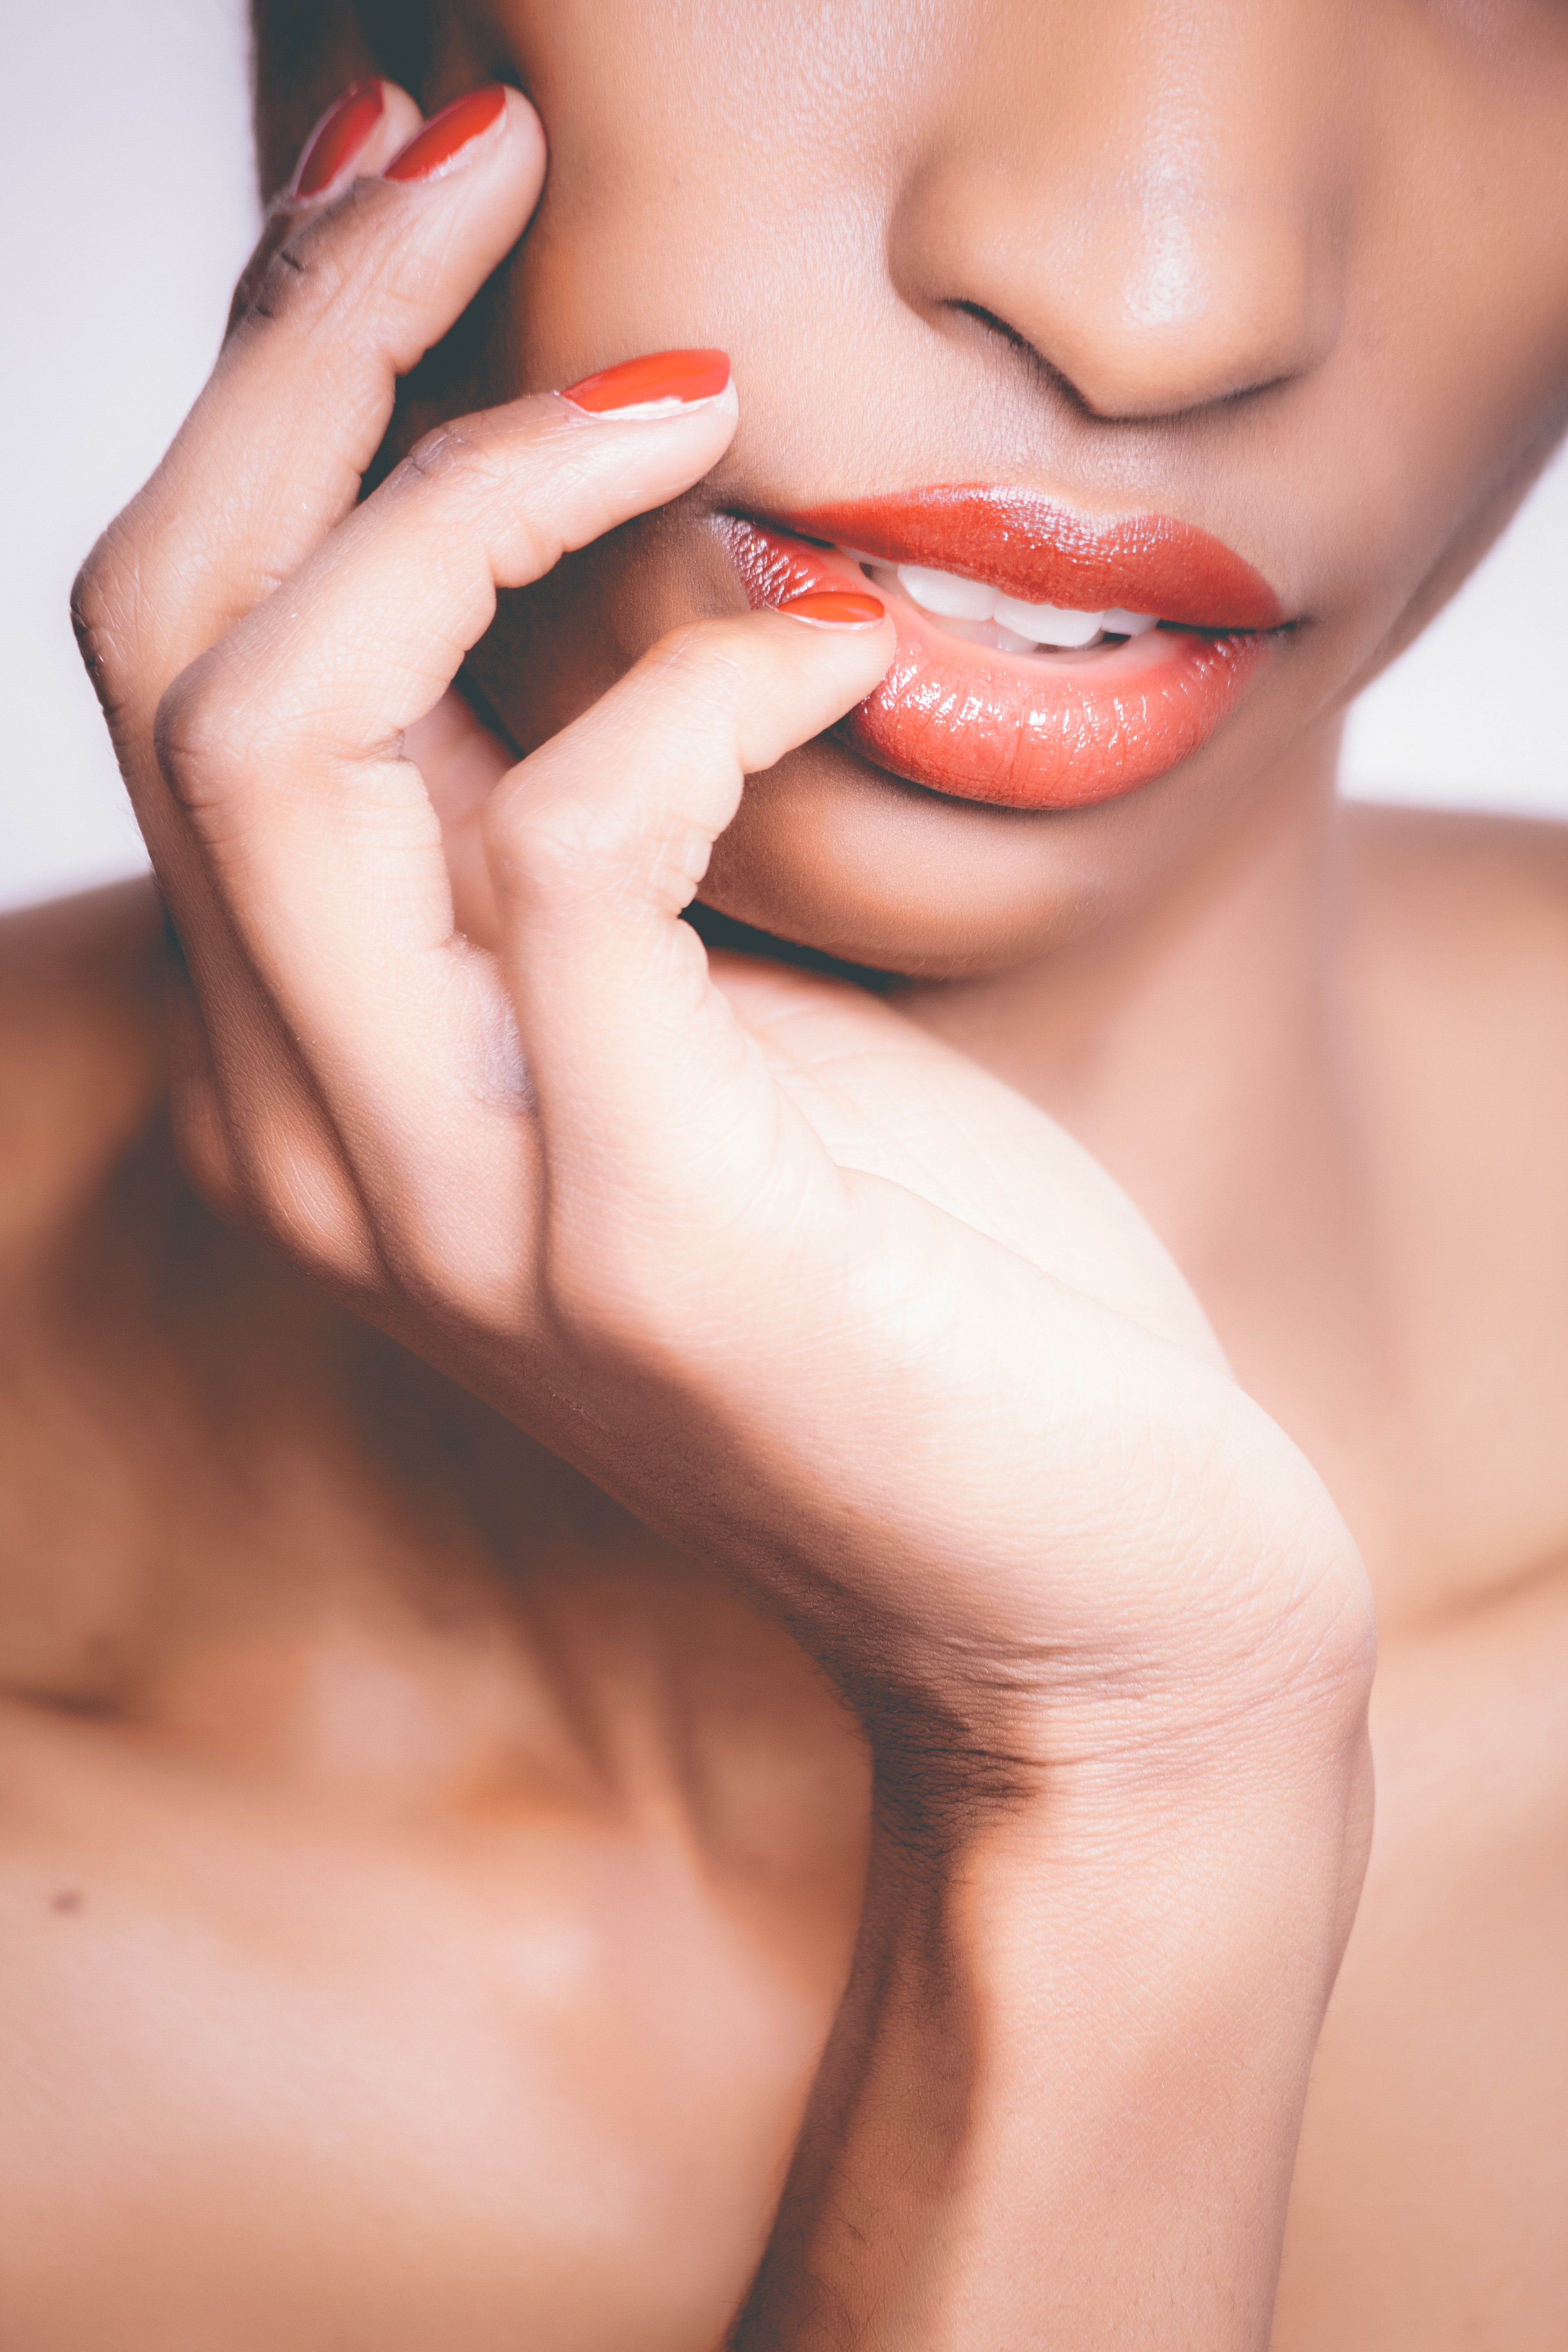 Woman with orange lipstick and manicure taking selfie photo